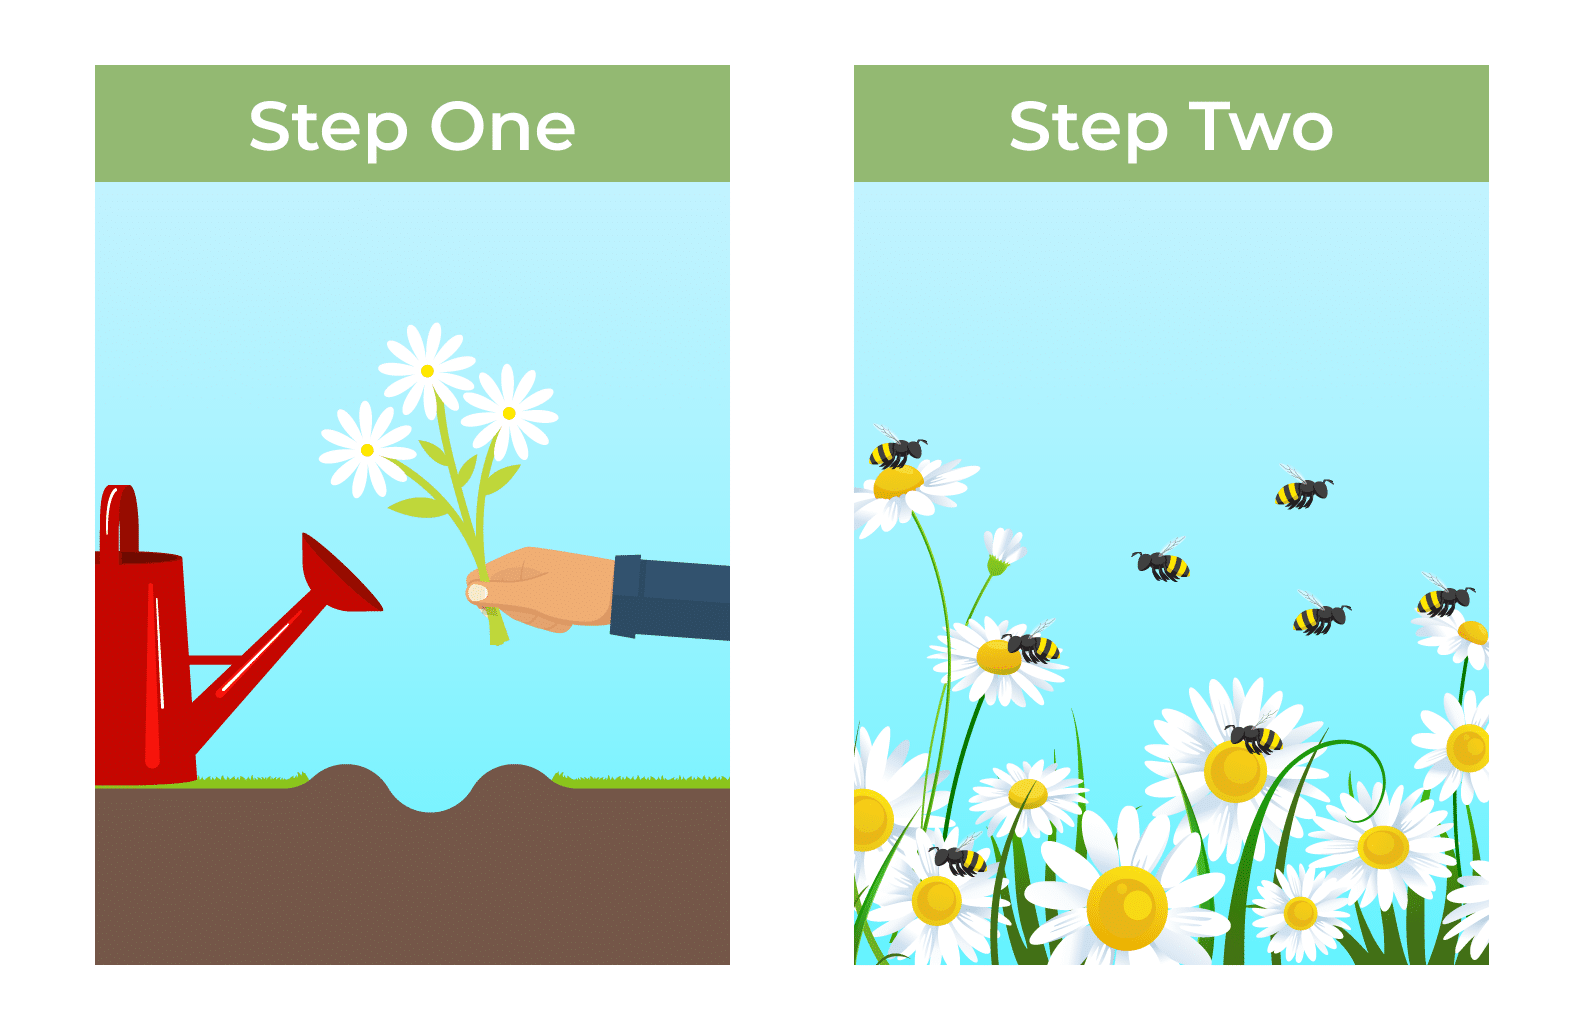 split graphic of hand planting flowers on left side and bees buzzing around flower garden on right side